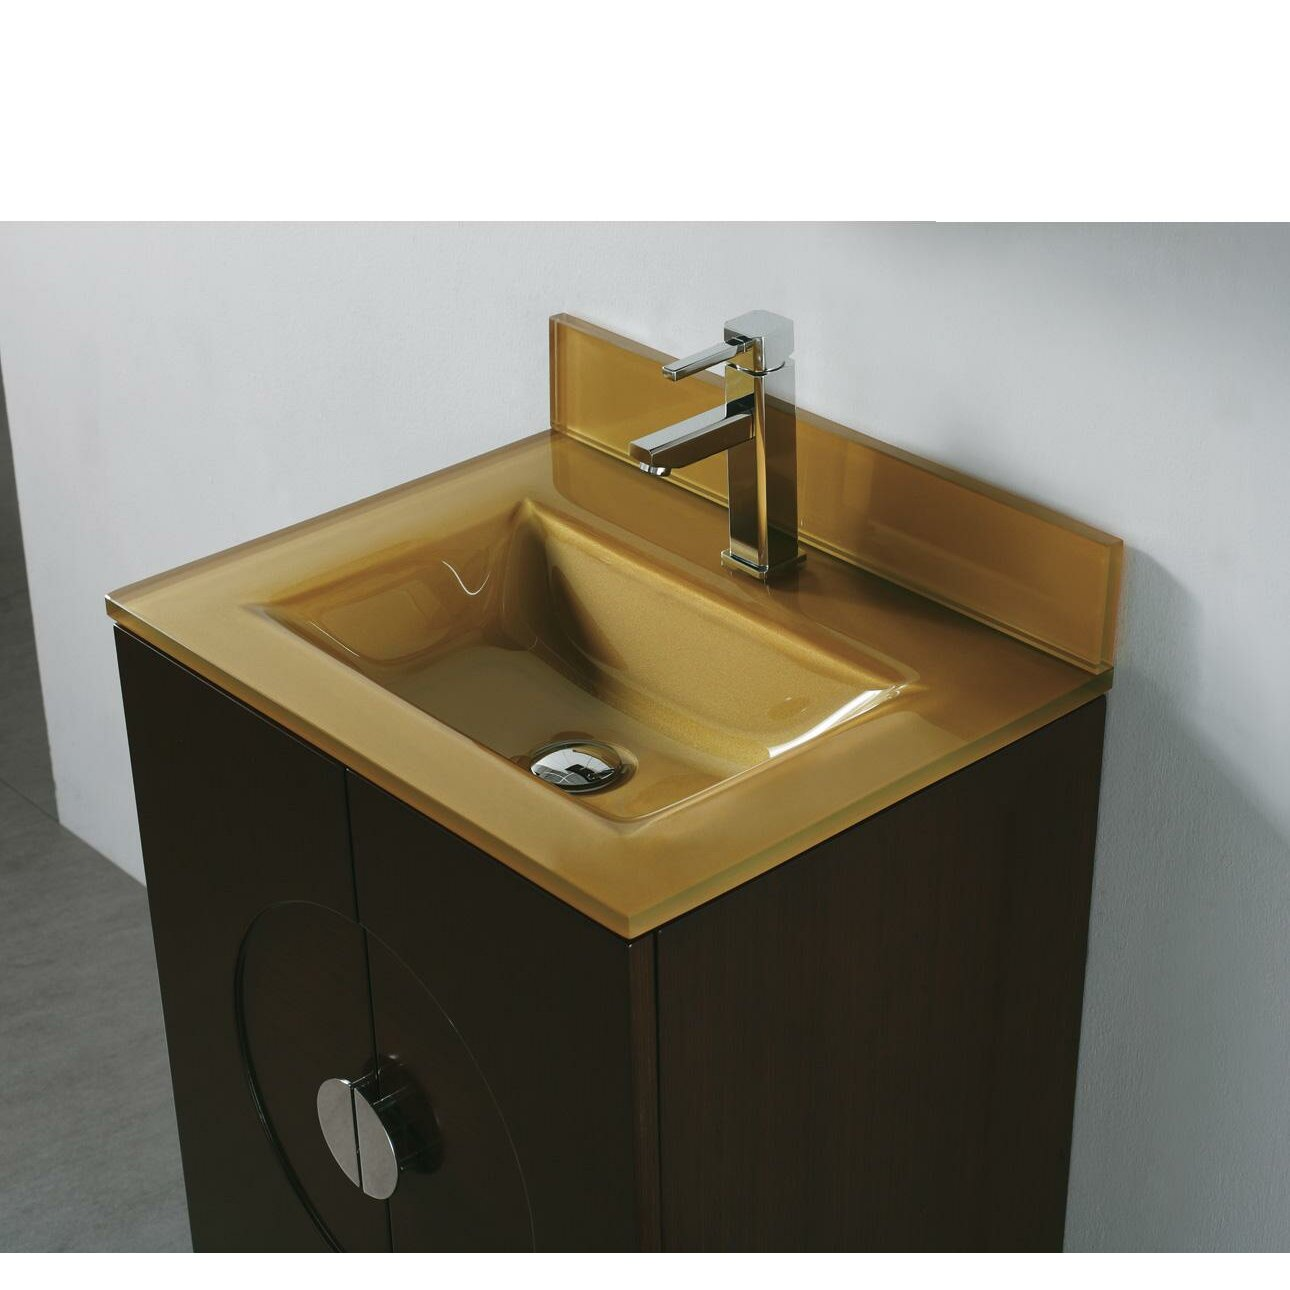 Bathroom Sinks Countertop : Madeli Tempered Glass Countertop Bathroom Sink & Reviews Wayfair